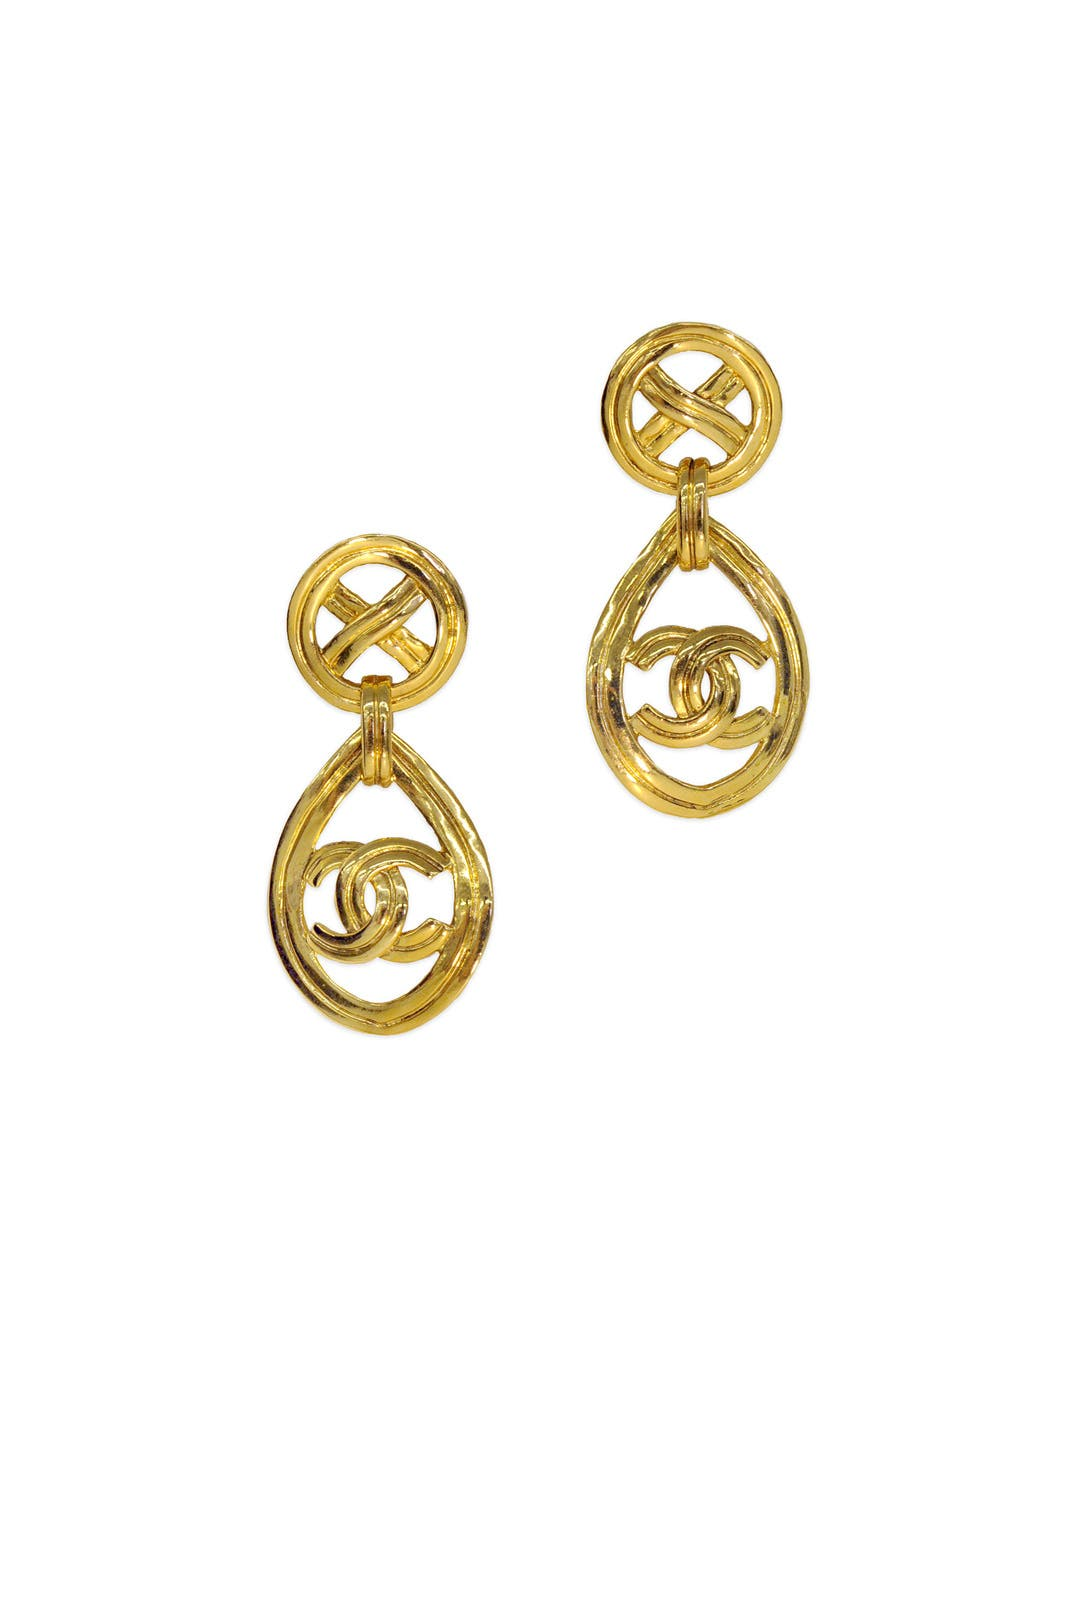 Vintage Chanel Cc Gold Drop Earrings By Decades Vintage For $125  Rent The  Runway